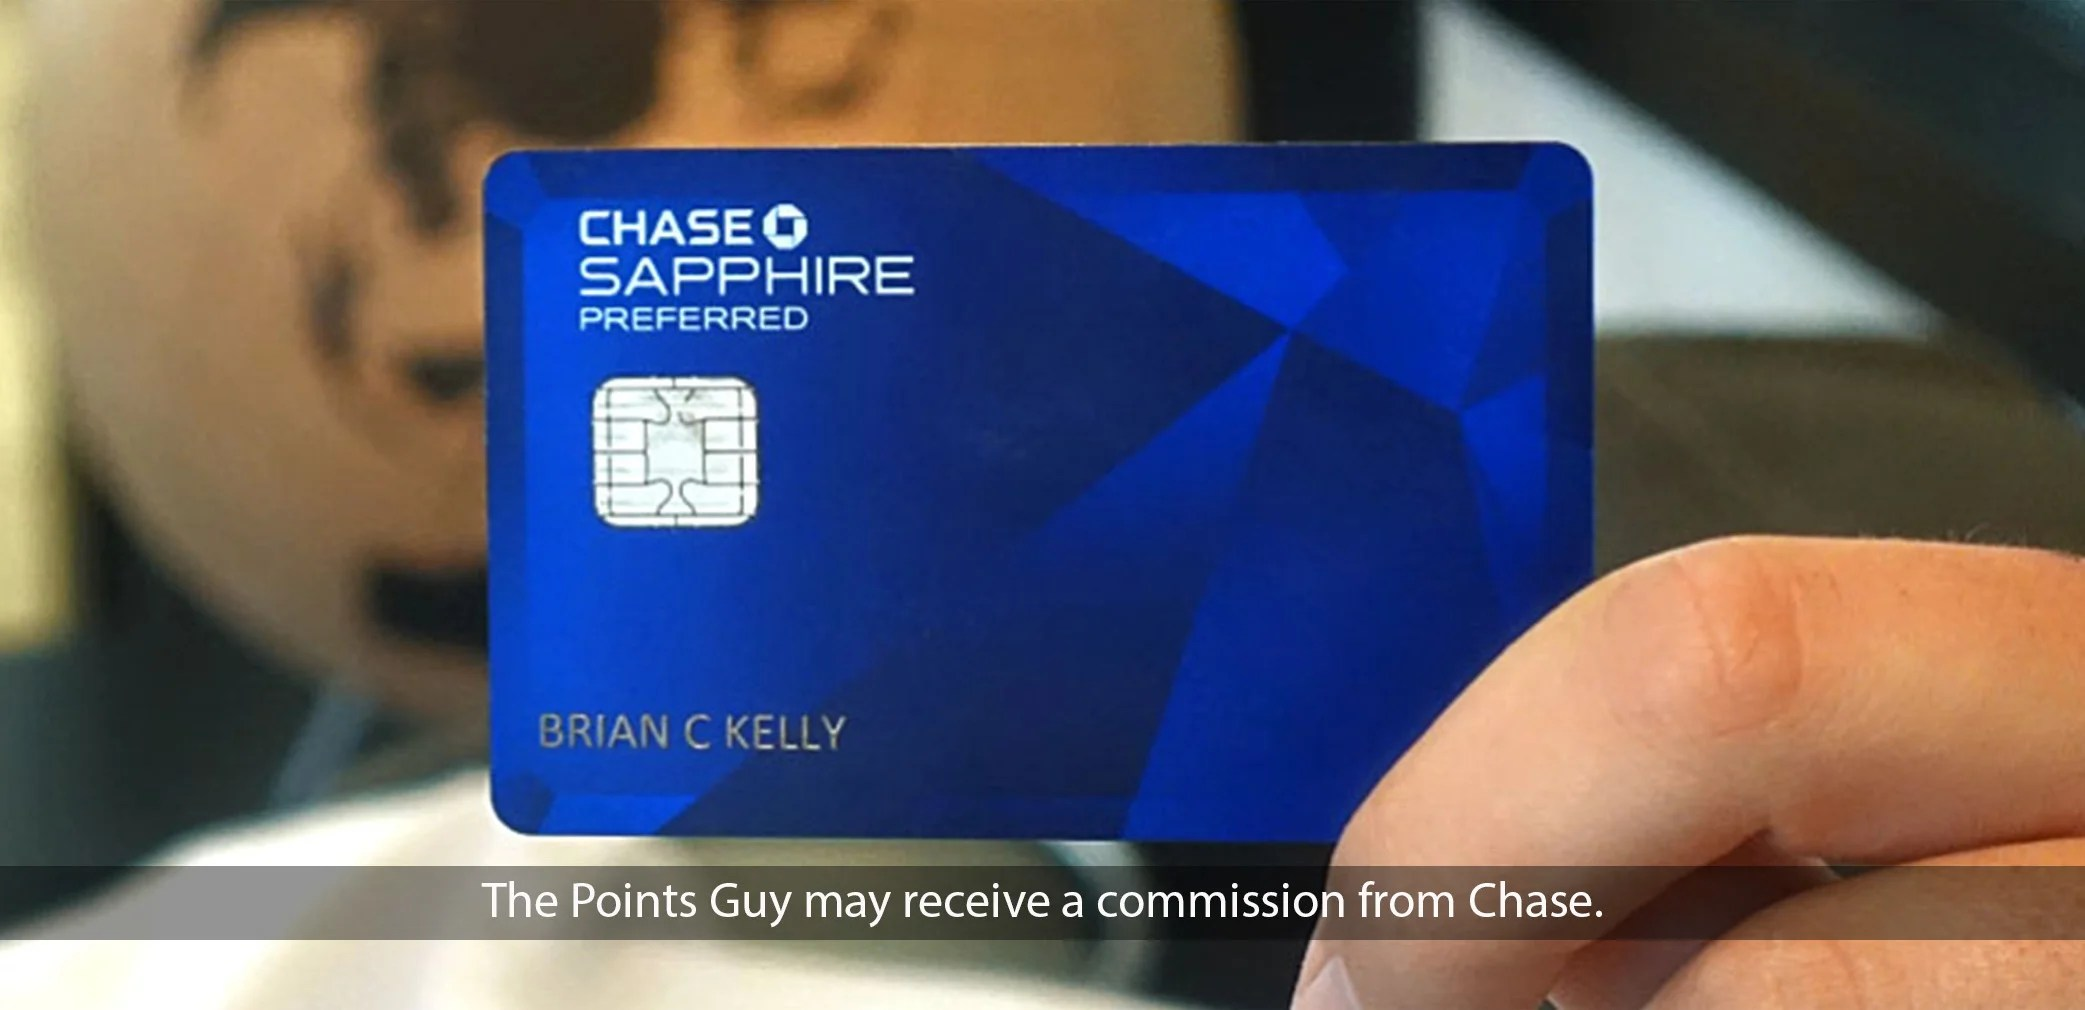 5 chase sapphire preferred benefits you might not know about